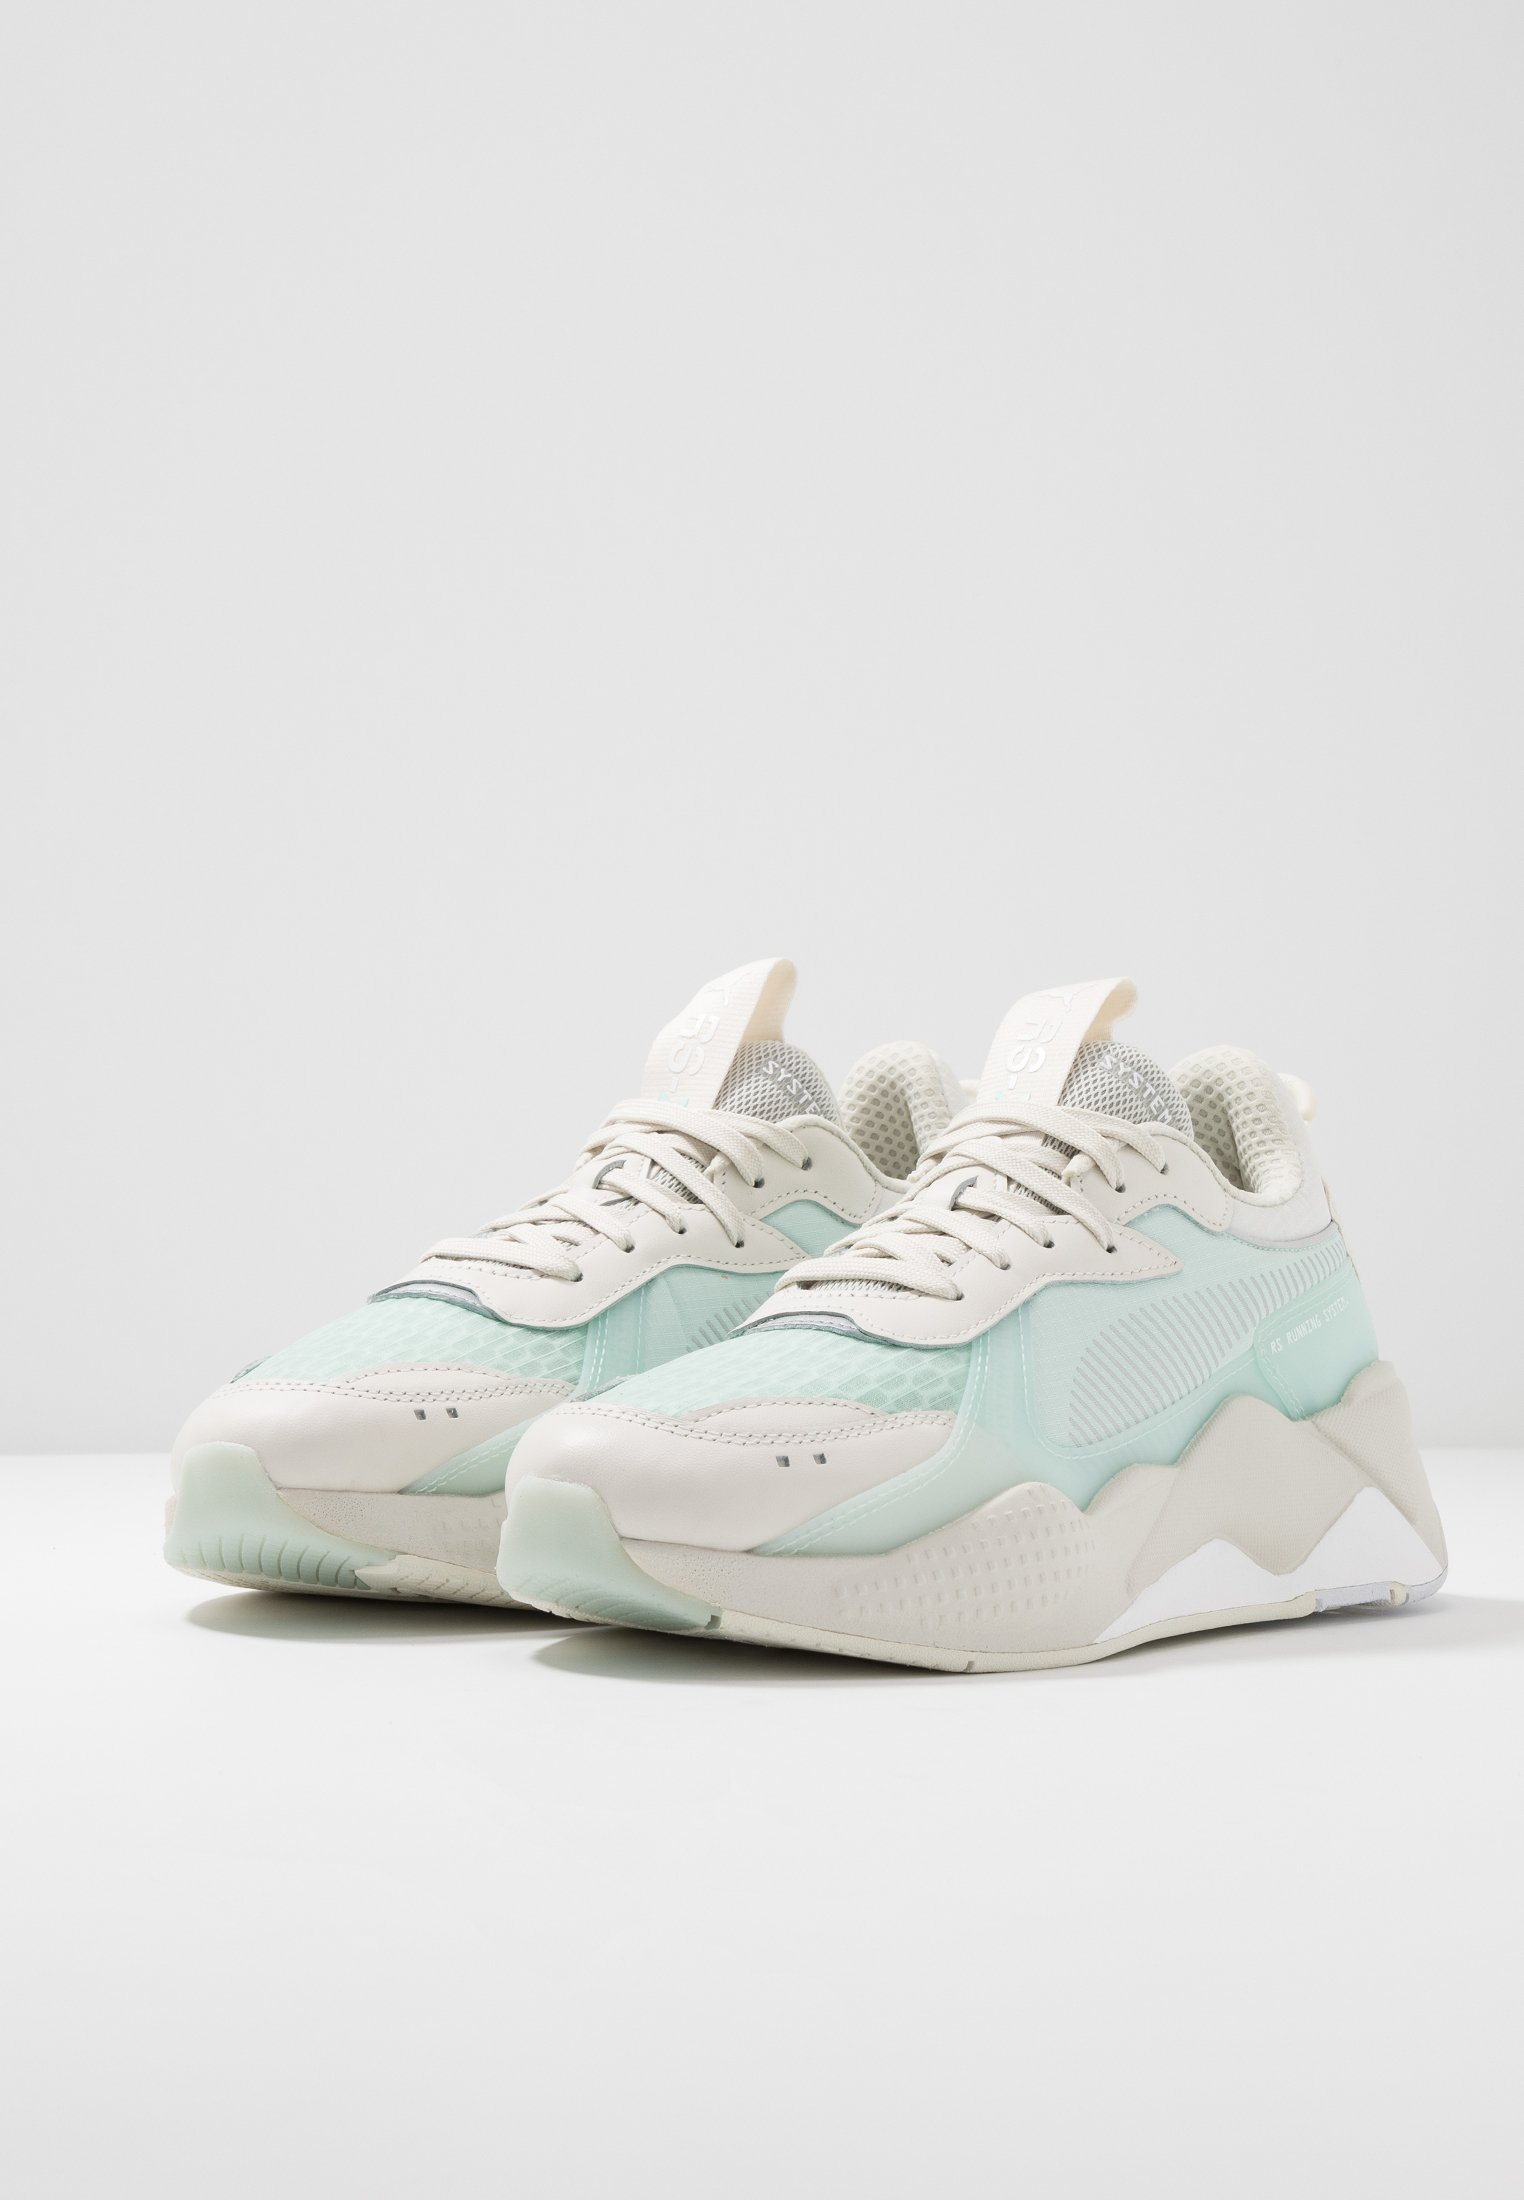 gray basses fair X TECHBaskets aqua Puma RS vaporous 1JFcT3lK